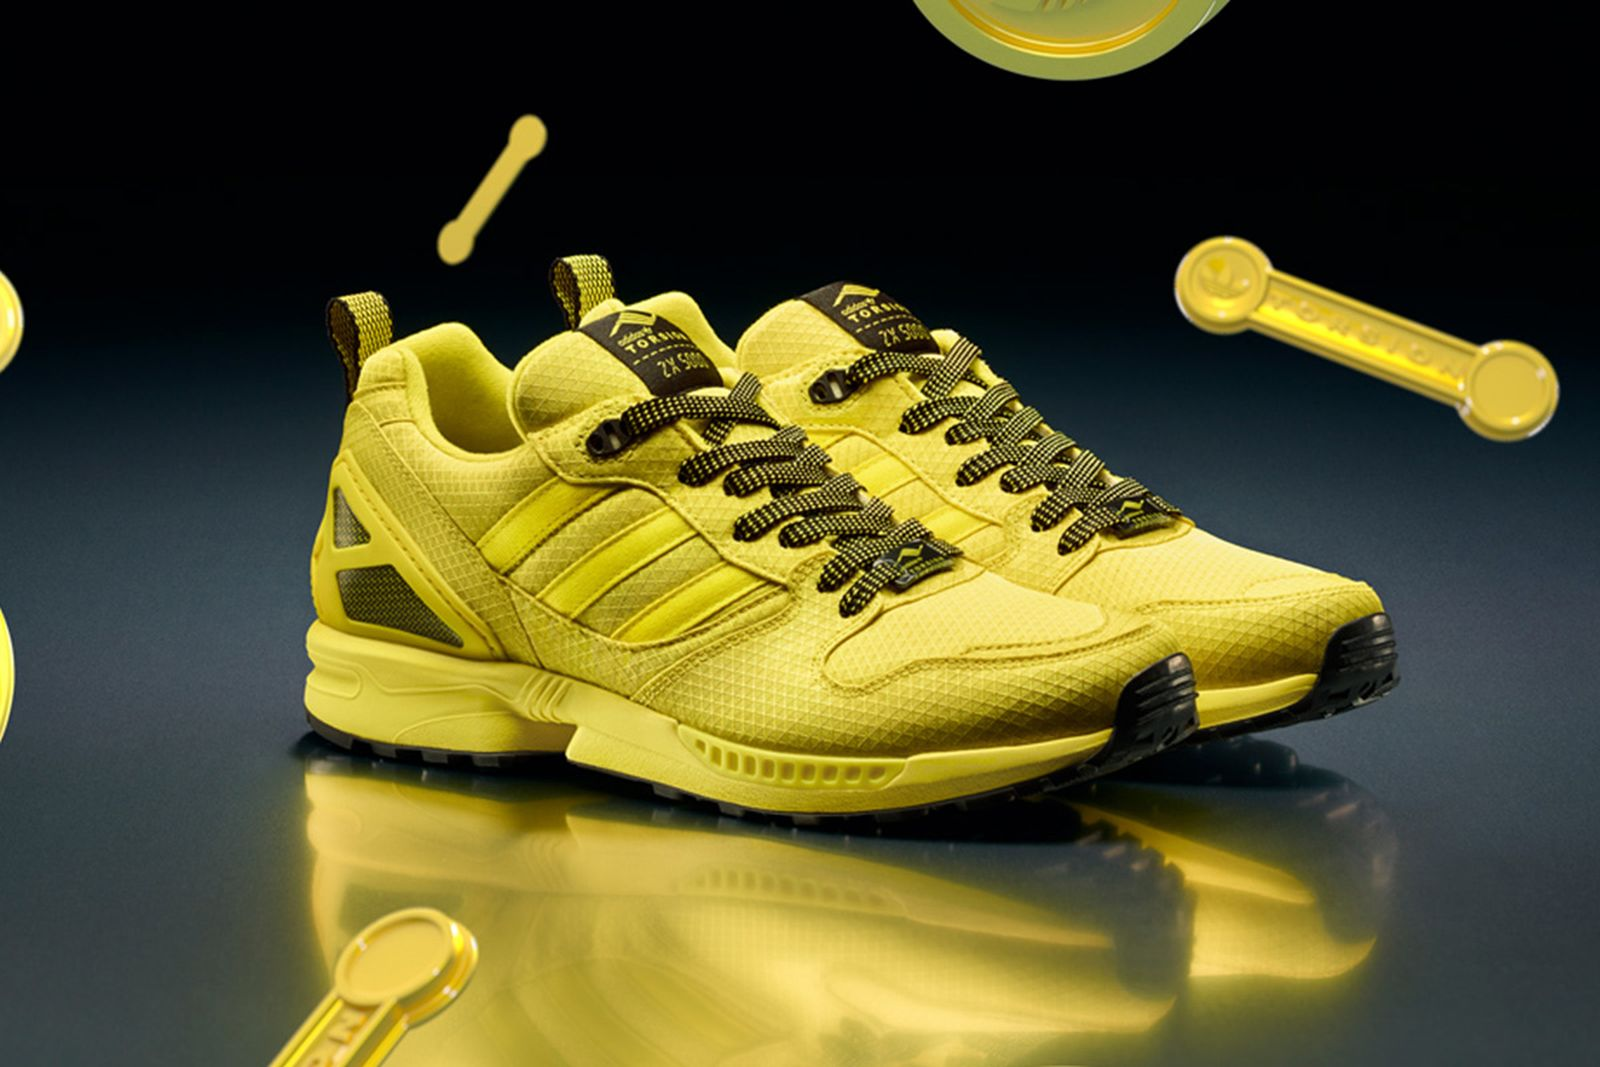 adidas-zx-5000-torsion-release-date-price-01